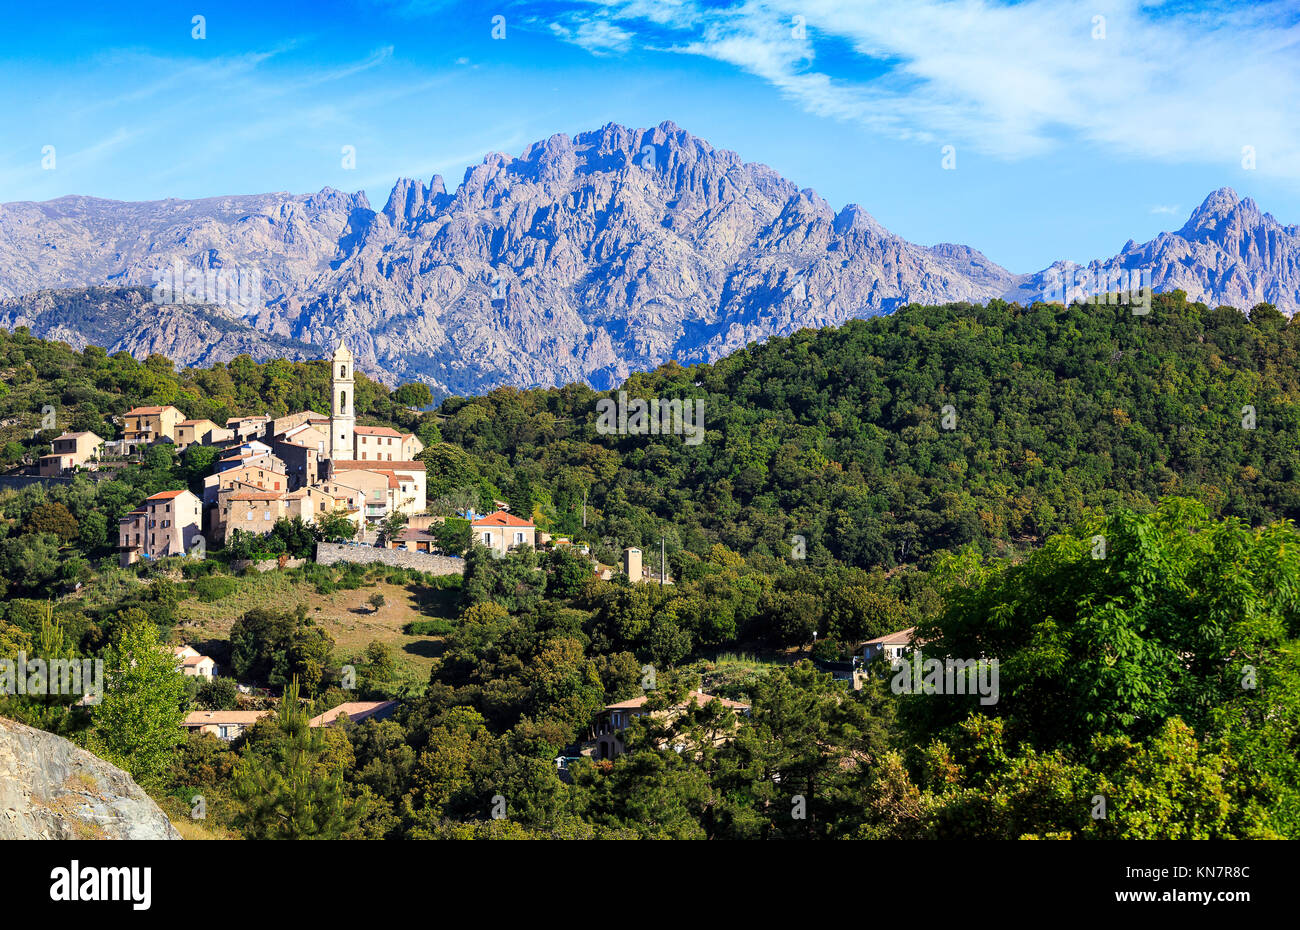 High Mountain Village of Soveria, Haut Corse, Corsica Stock Photo